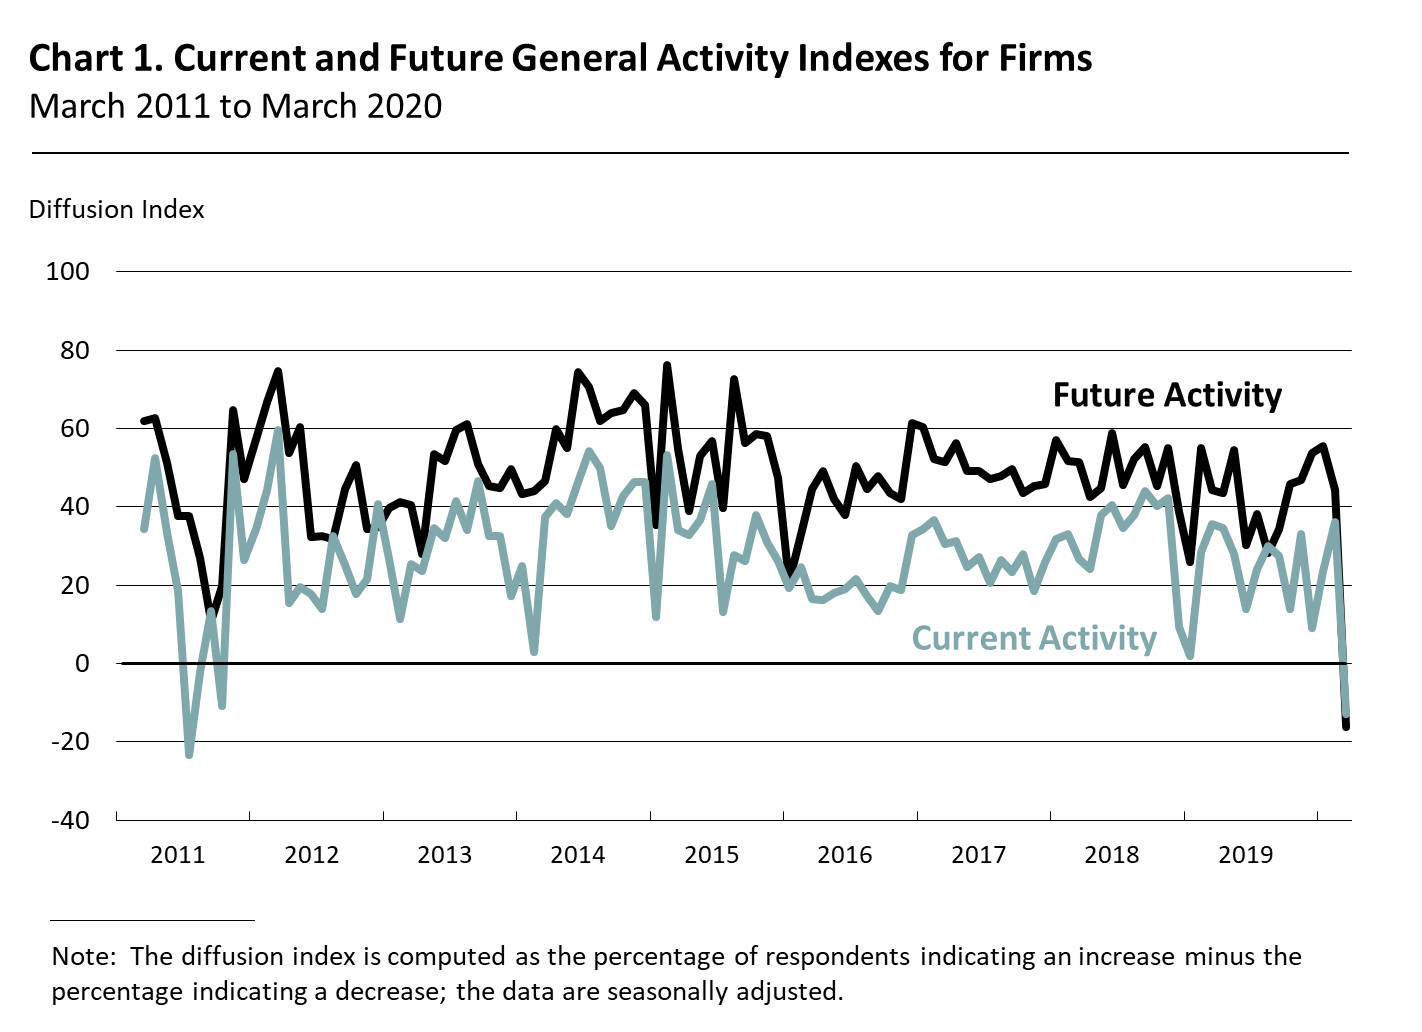 Current and Future General Activity Indexes for Firms